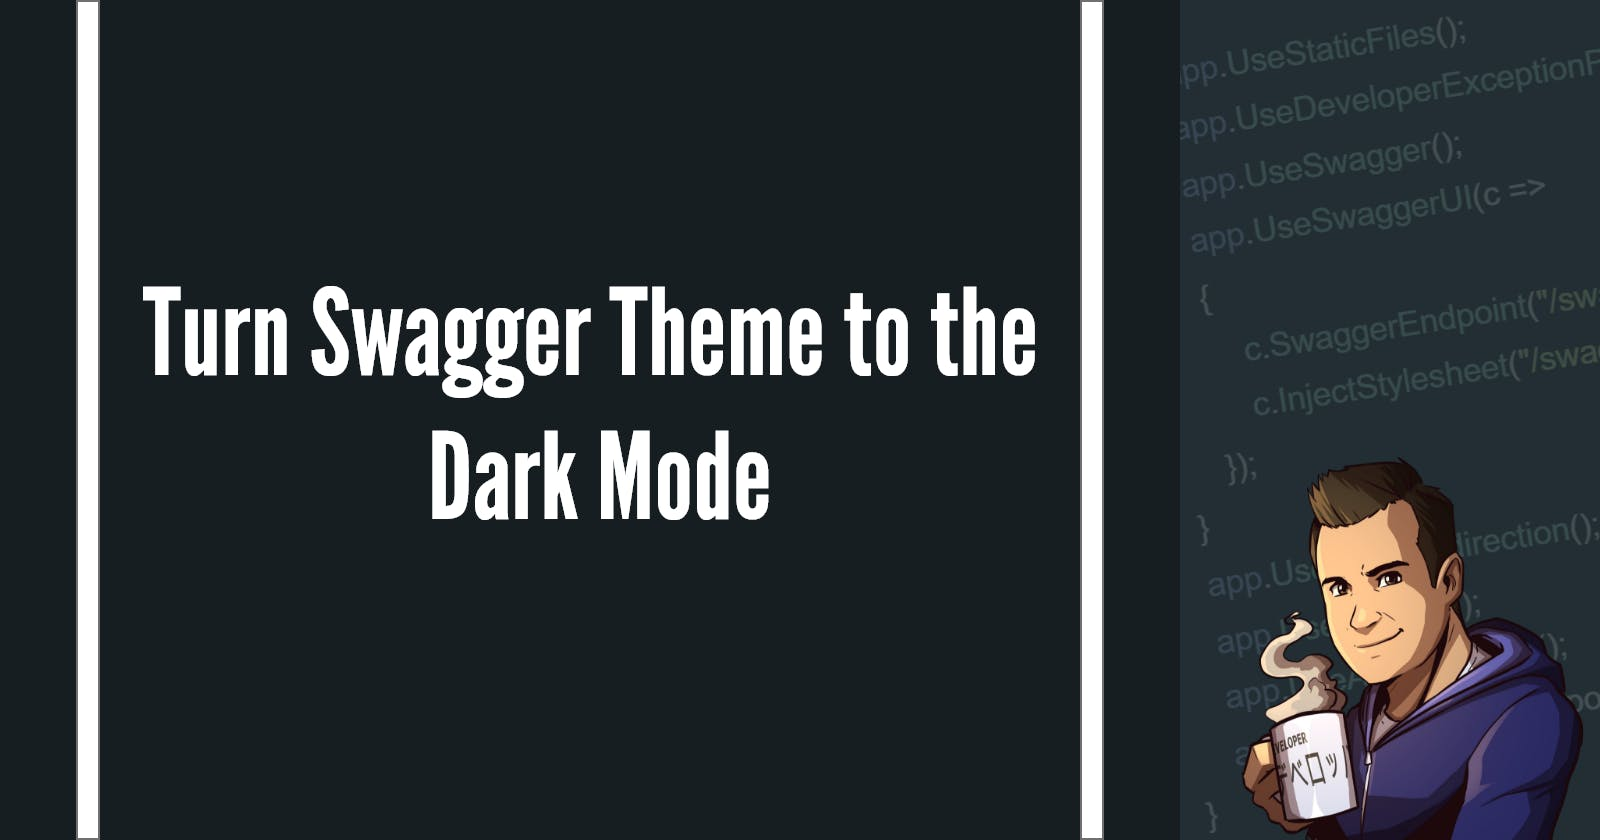 Turn Swagger Theme to the Dark Mode